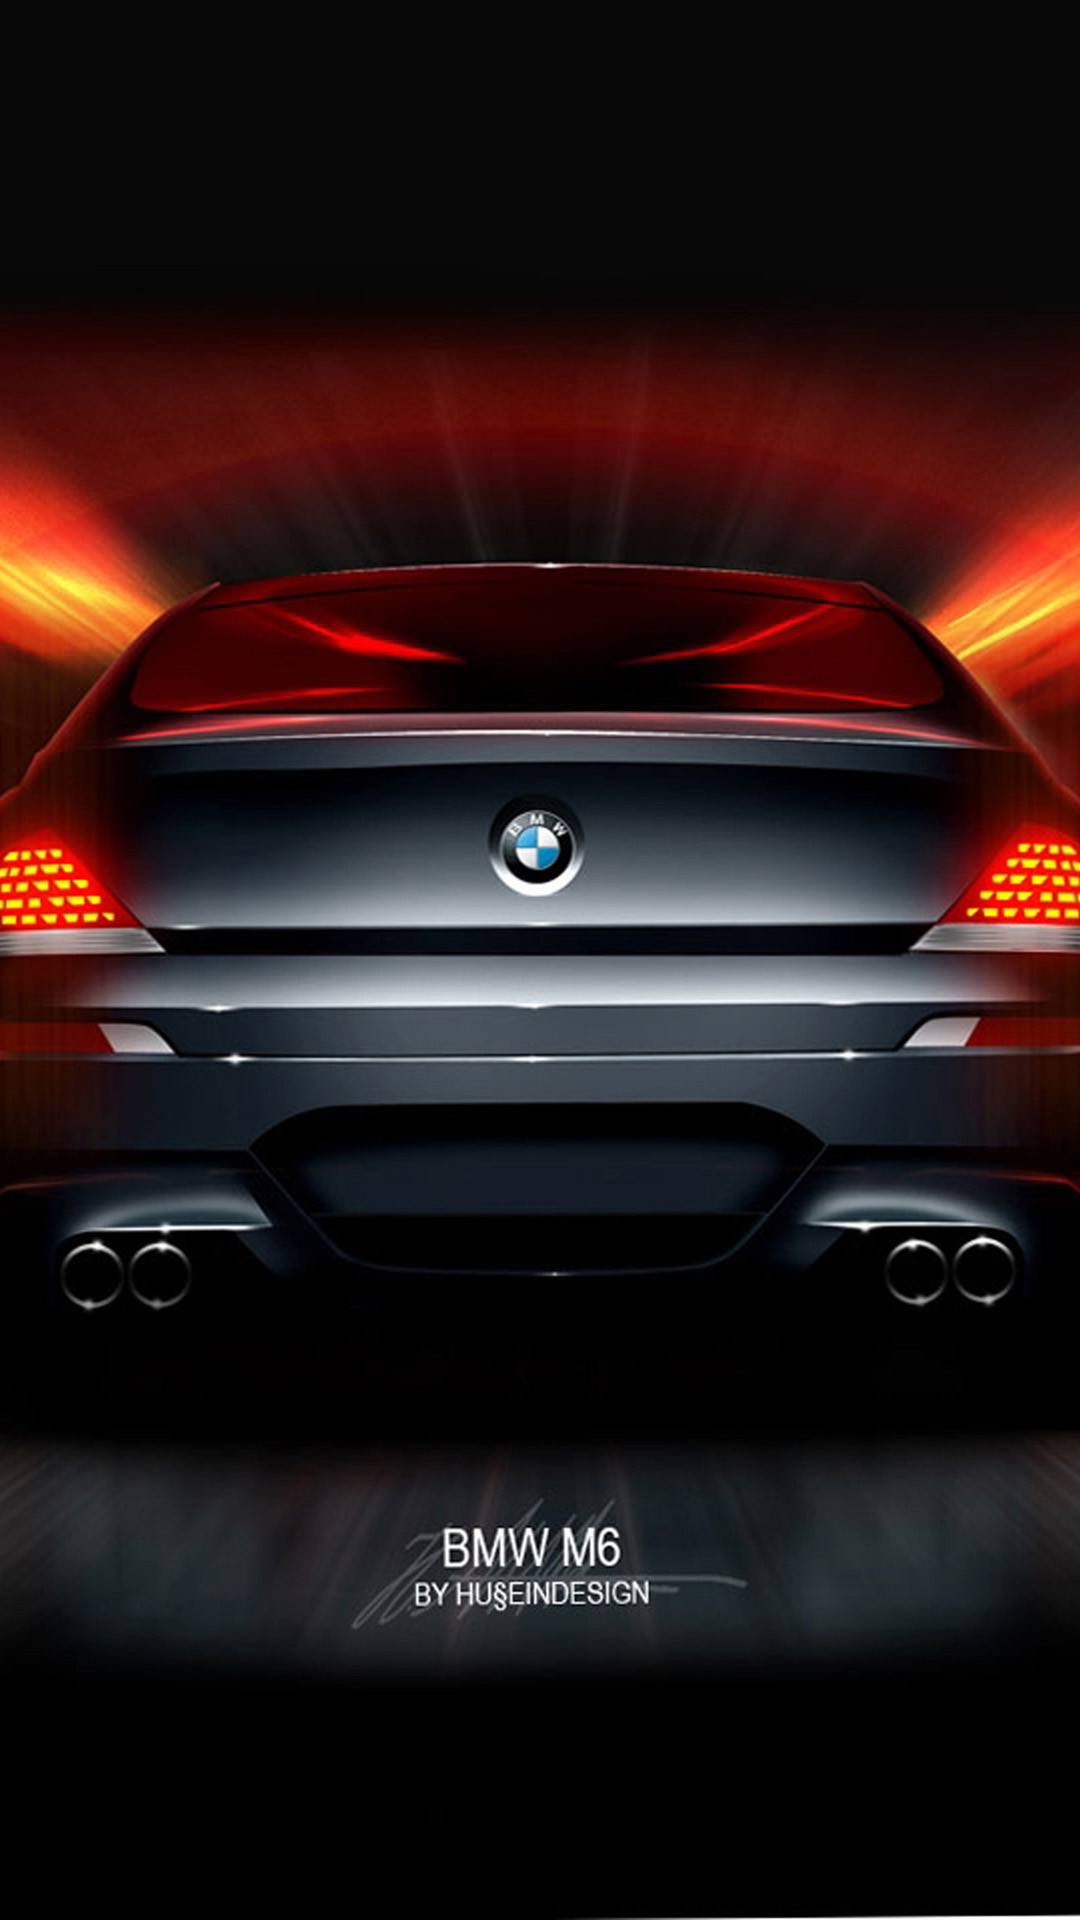 1080x1920 Car Wallpapers For Samsung Galaxy S5 37 Download 2560x1600 Wide